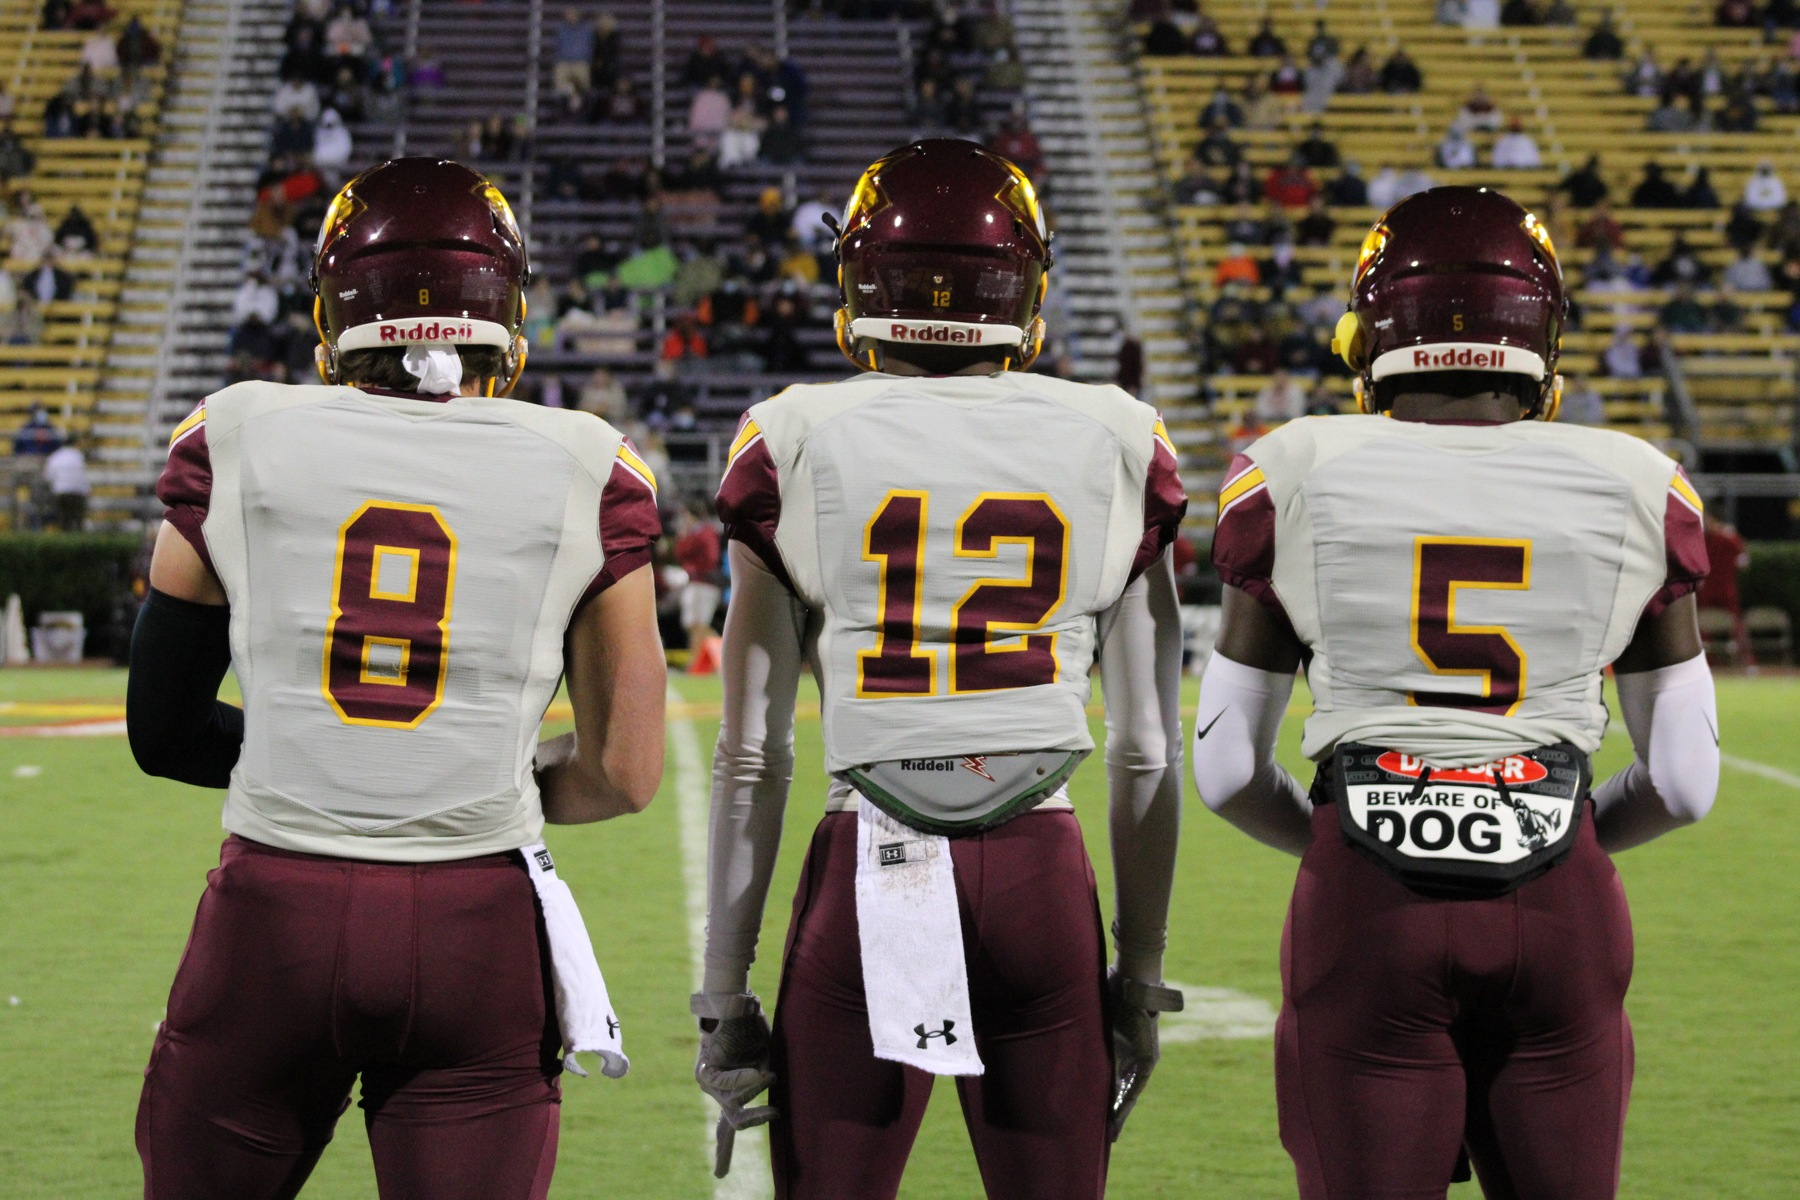 Pearl River looks to bounce back against Southwest